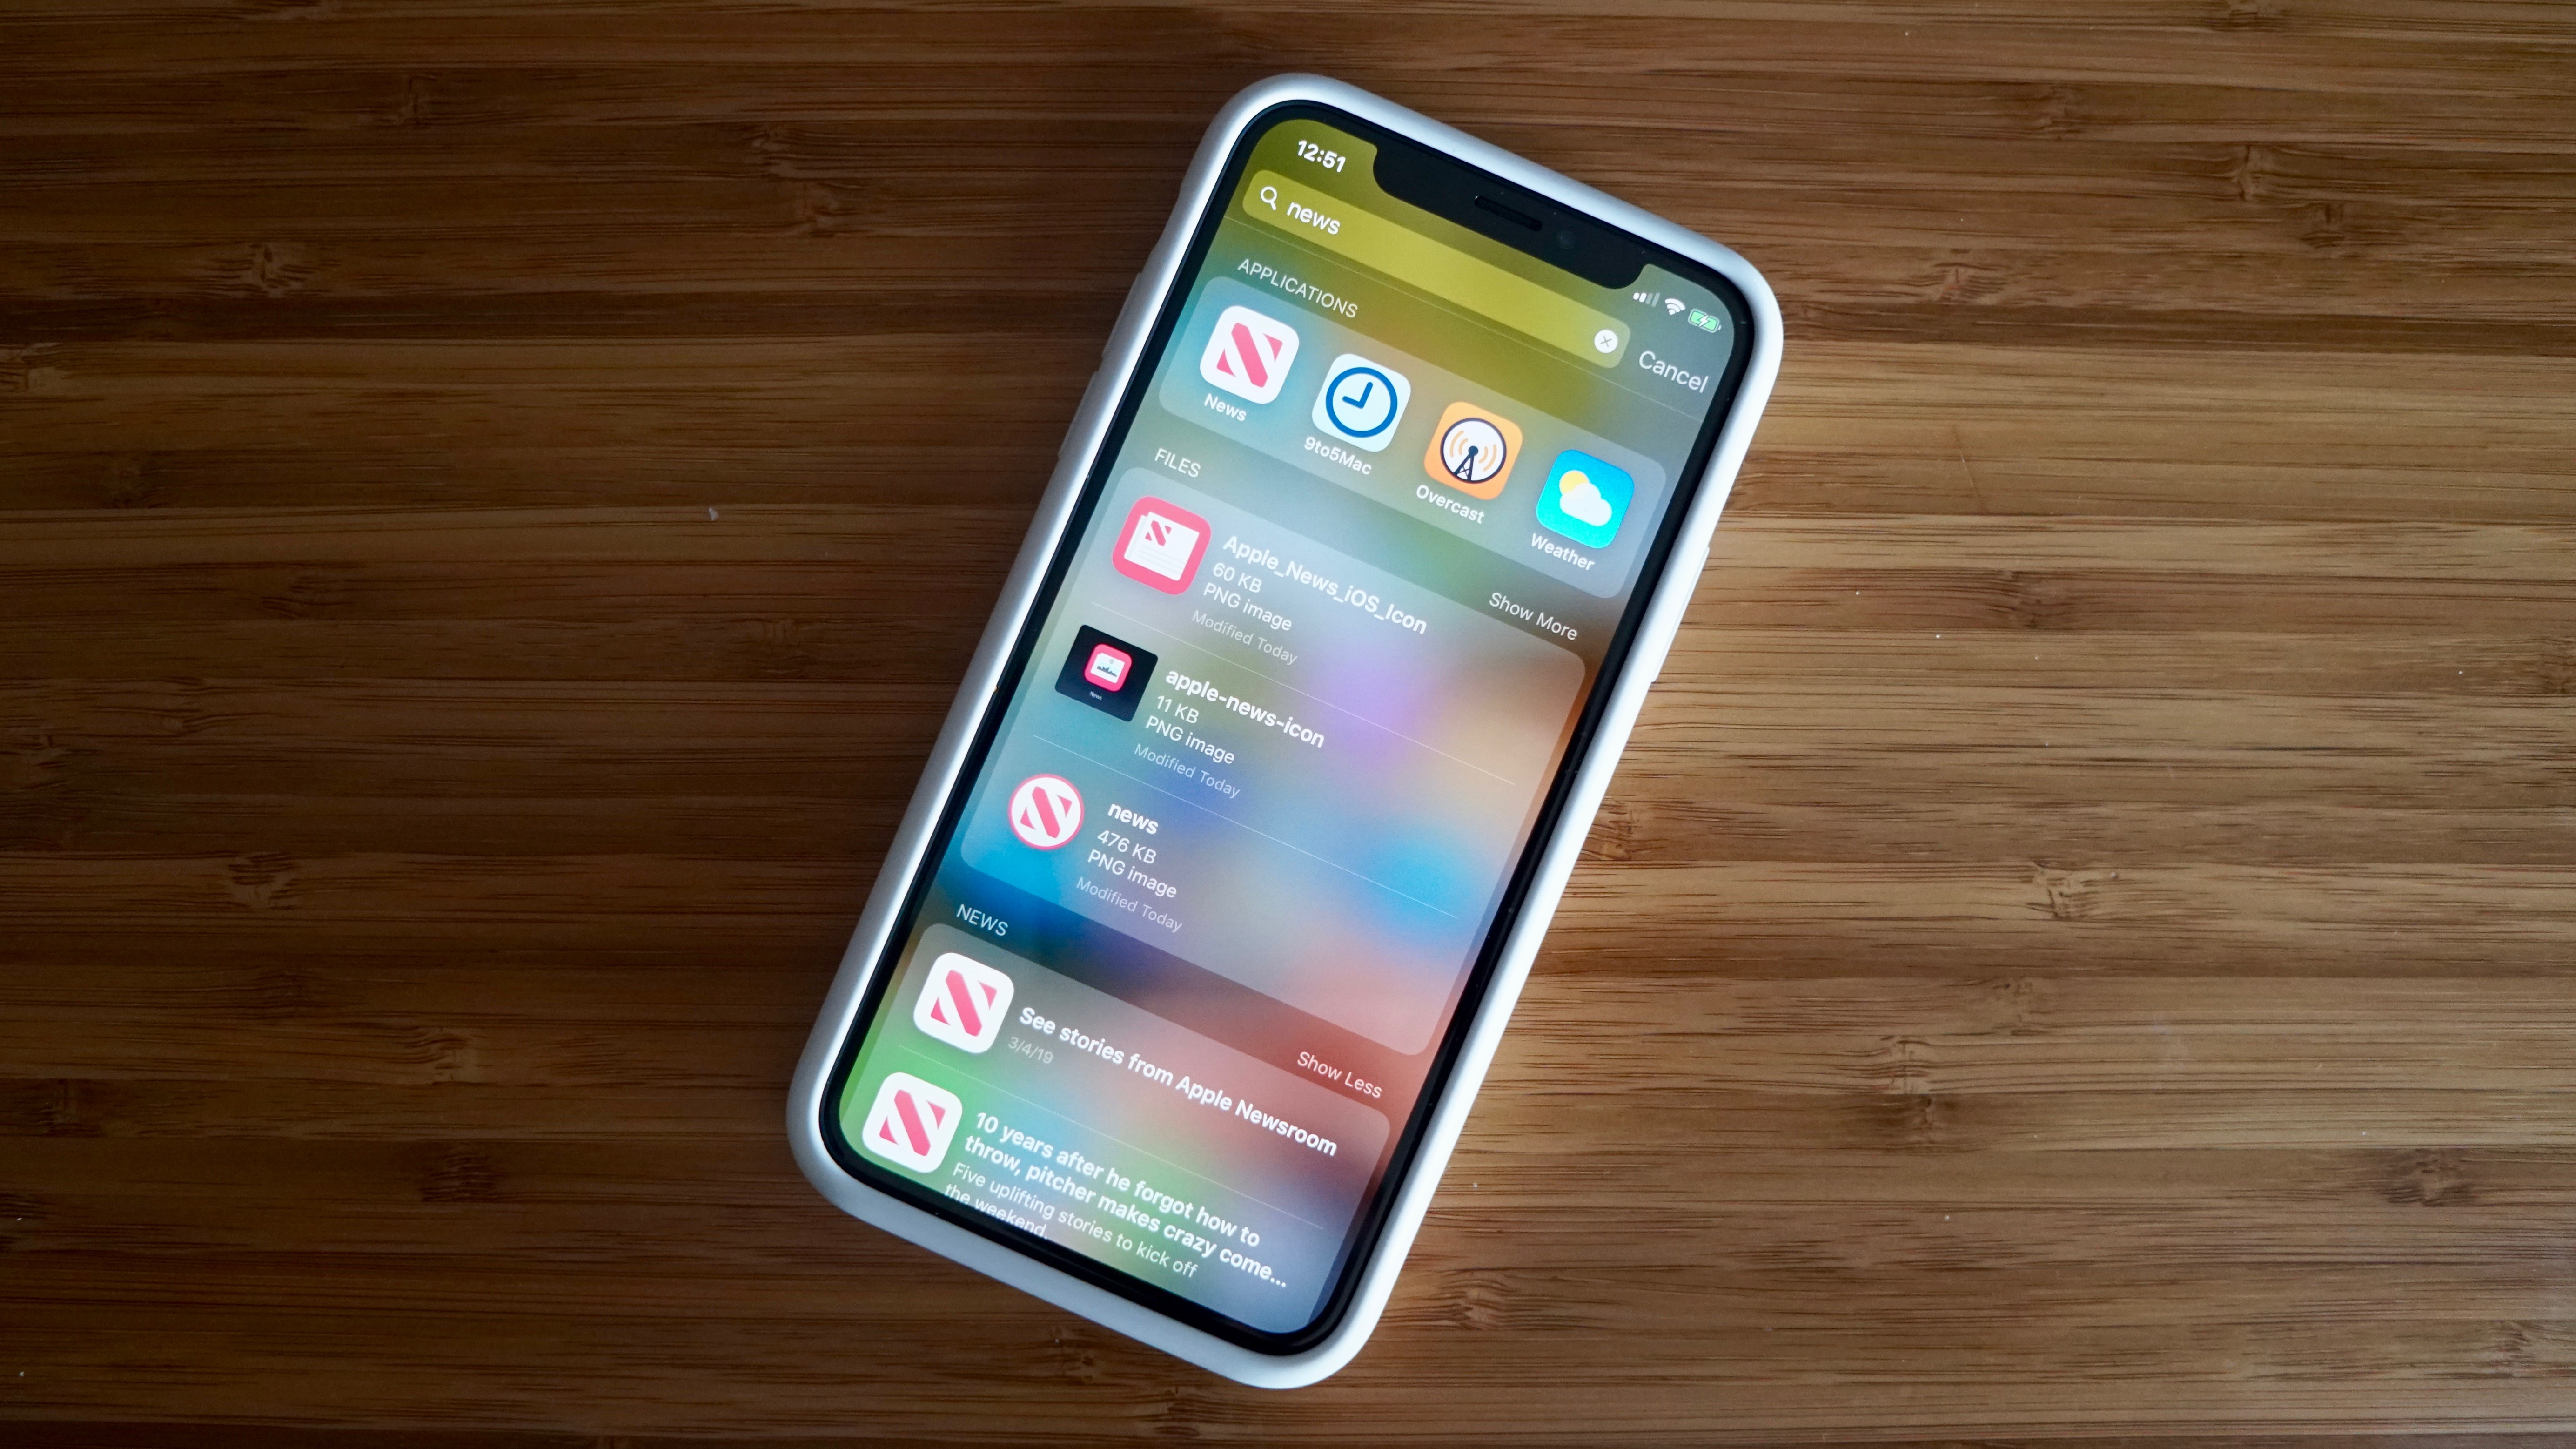 Download iOS 122 Final IPSW Links and OTA Update For iPhone and iPadYou can now download iOS 122 final IPSW links and overtheair OTA update Since the iPhone has